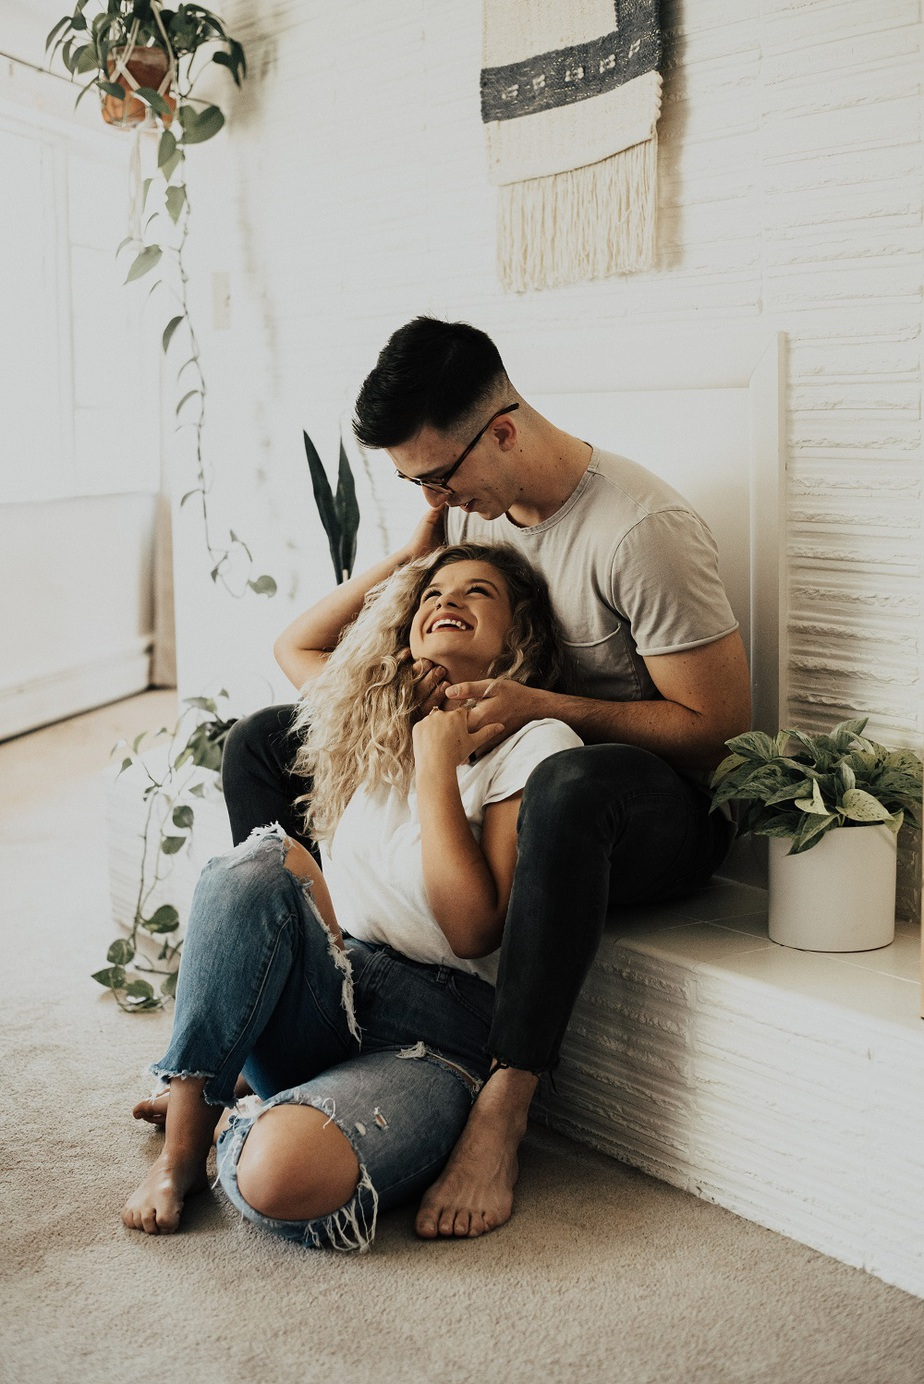 Tips for creating couple goals that are realisric - We have a list of List of cute relationship goals you can set for yourself and your significant other. And if you are looking for relationship goals examples, just click here.